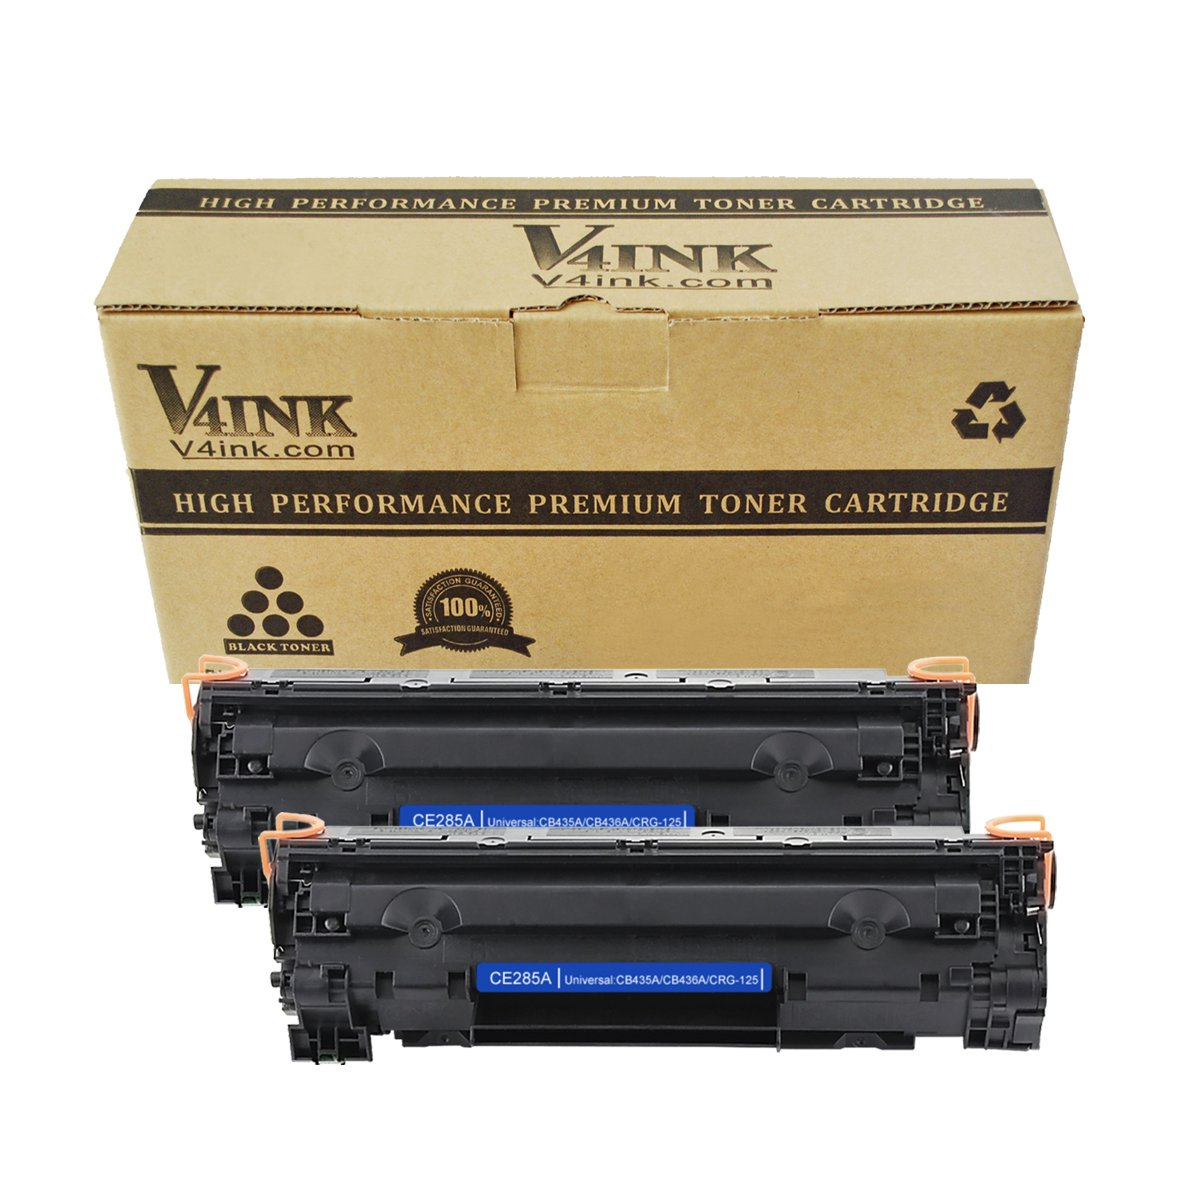 Amazon.com: 2 Pack V4INK Compatible CE285A 85A, Canon 125, CB435A 35A,  CB436A 36A Toner Cartridge for LaserJet P1102, M1212, M1217, M1132, M1214:  Office ...